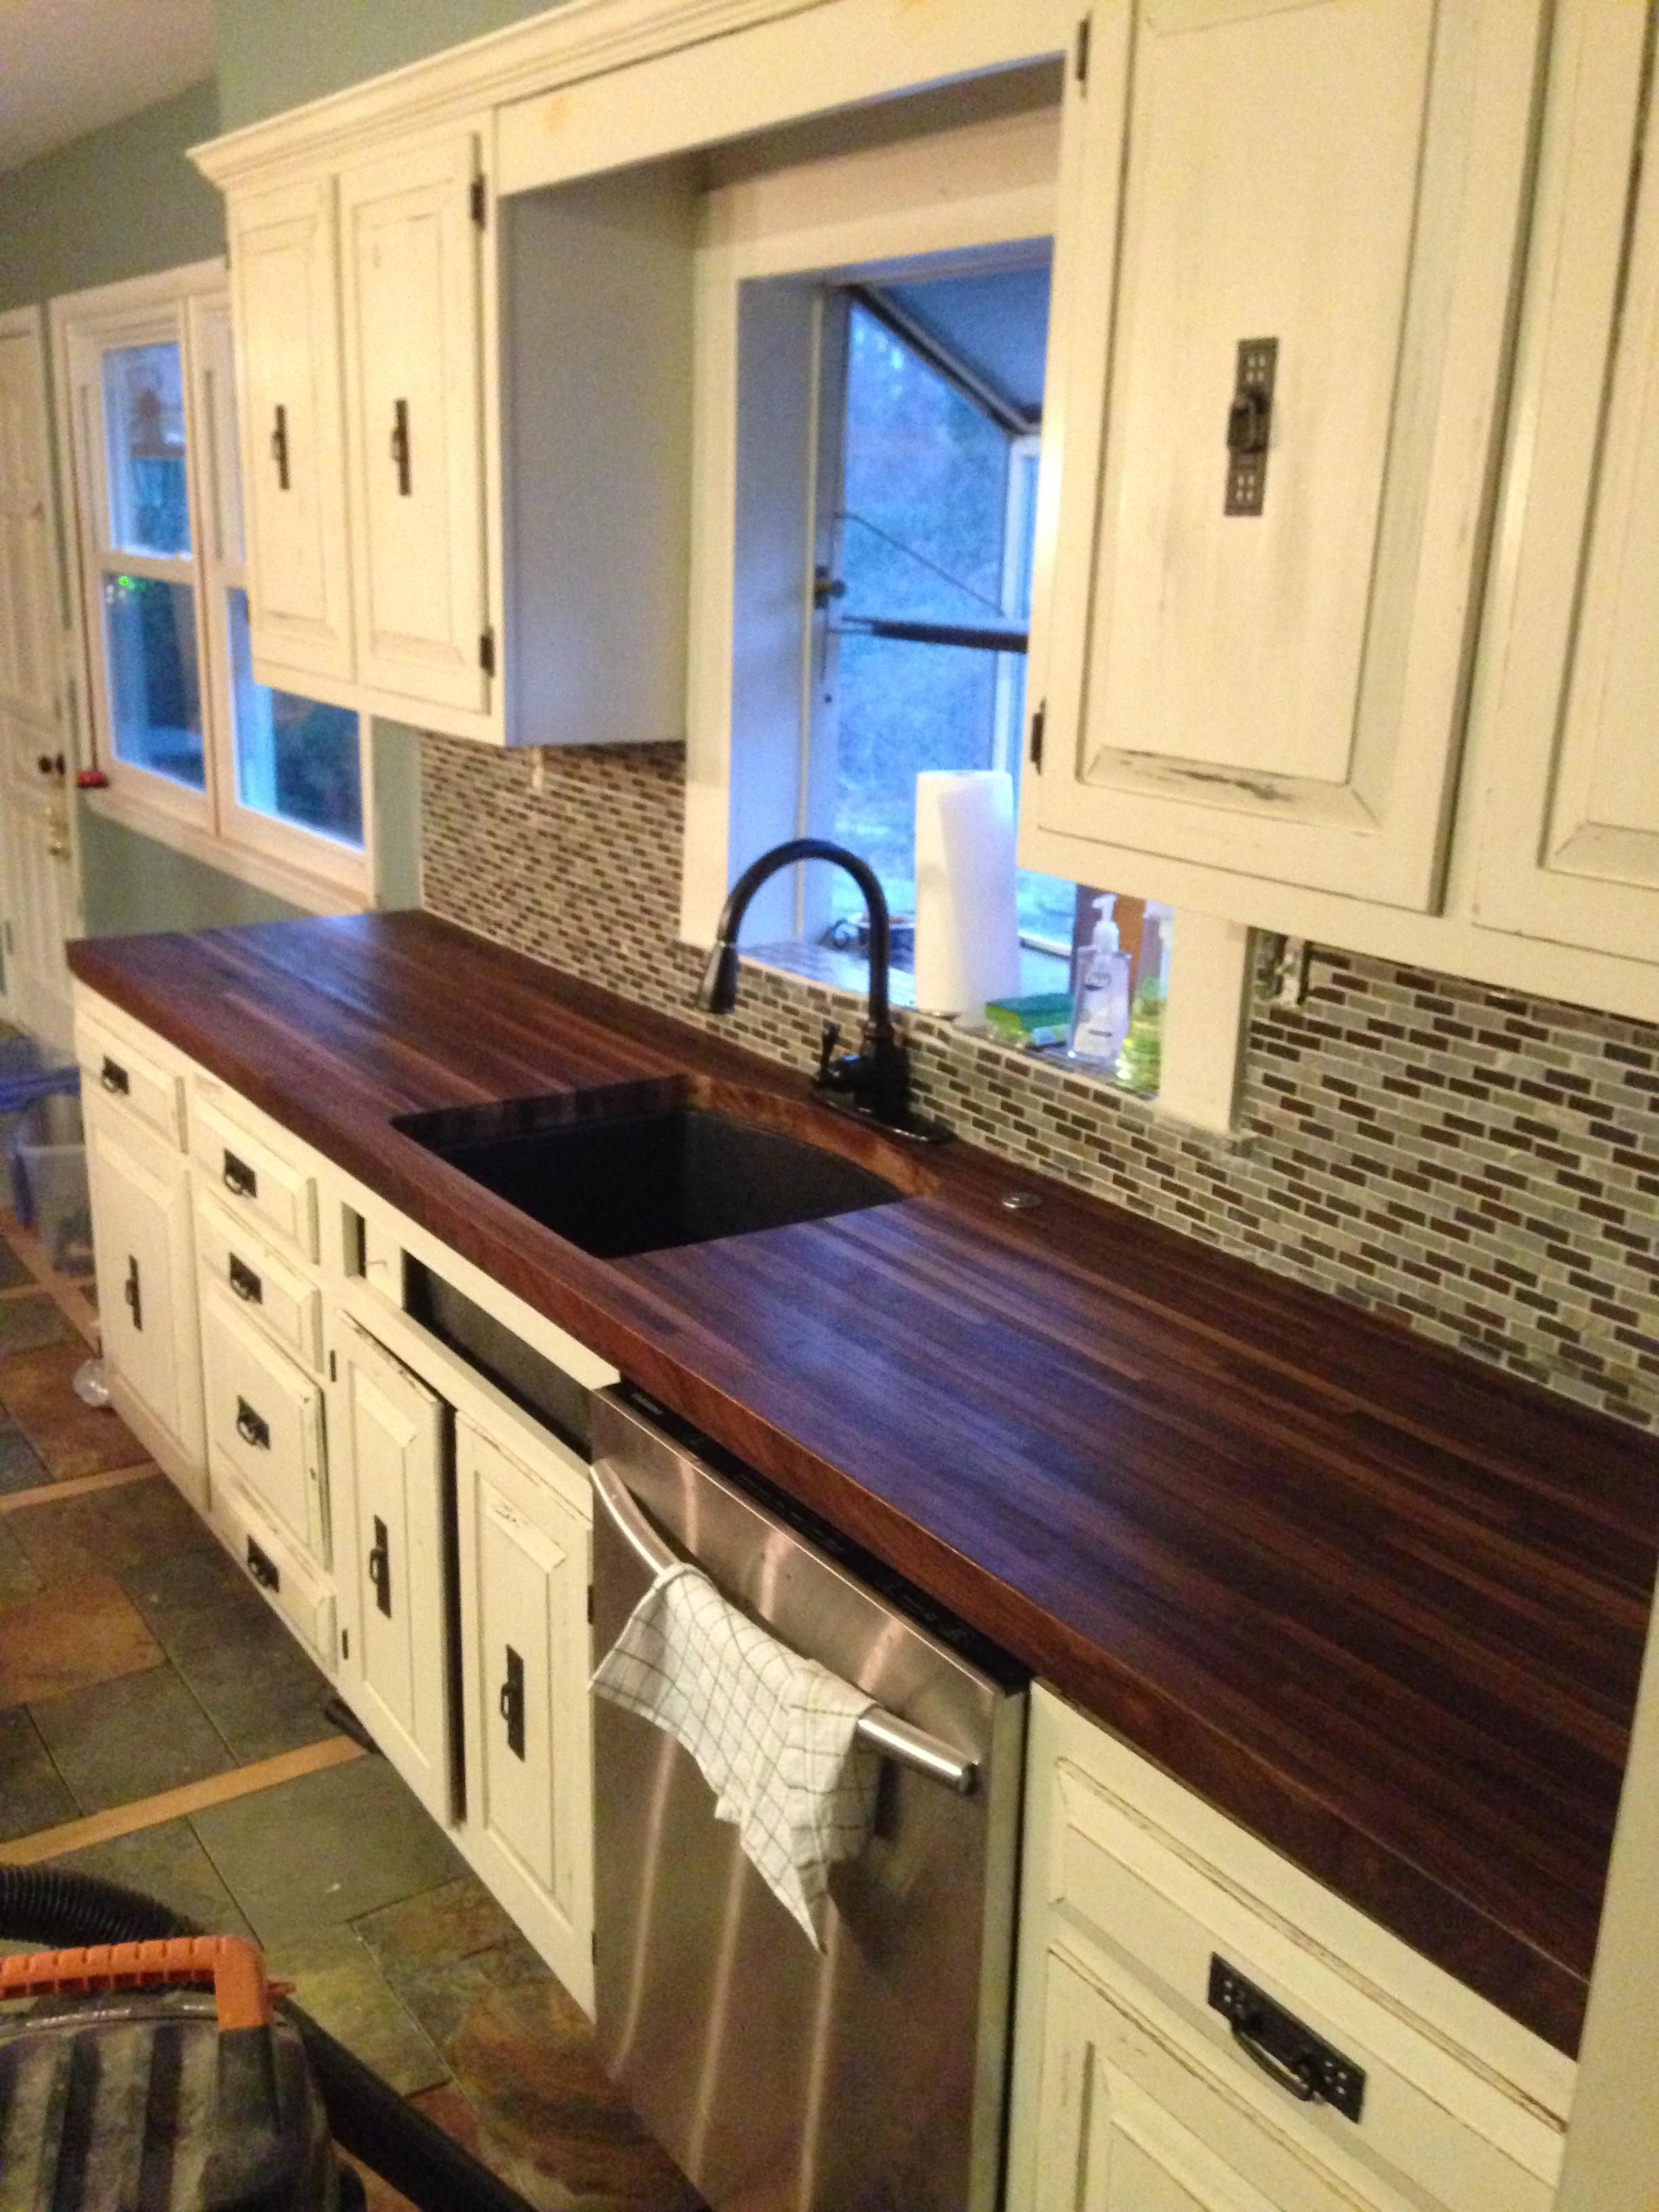 paint look daich countertops use resurfacing that coatings old house repair countertop photos like ideas designs marble resurface formica laminate to